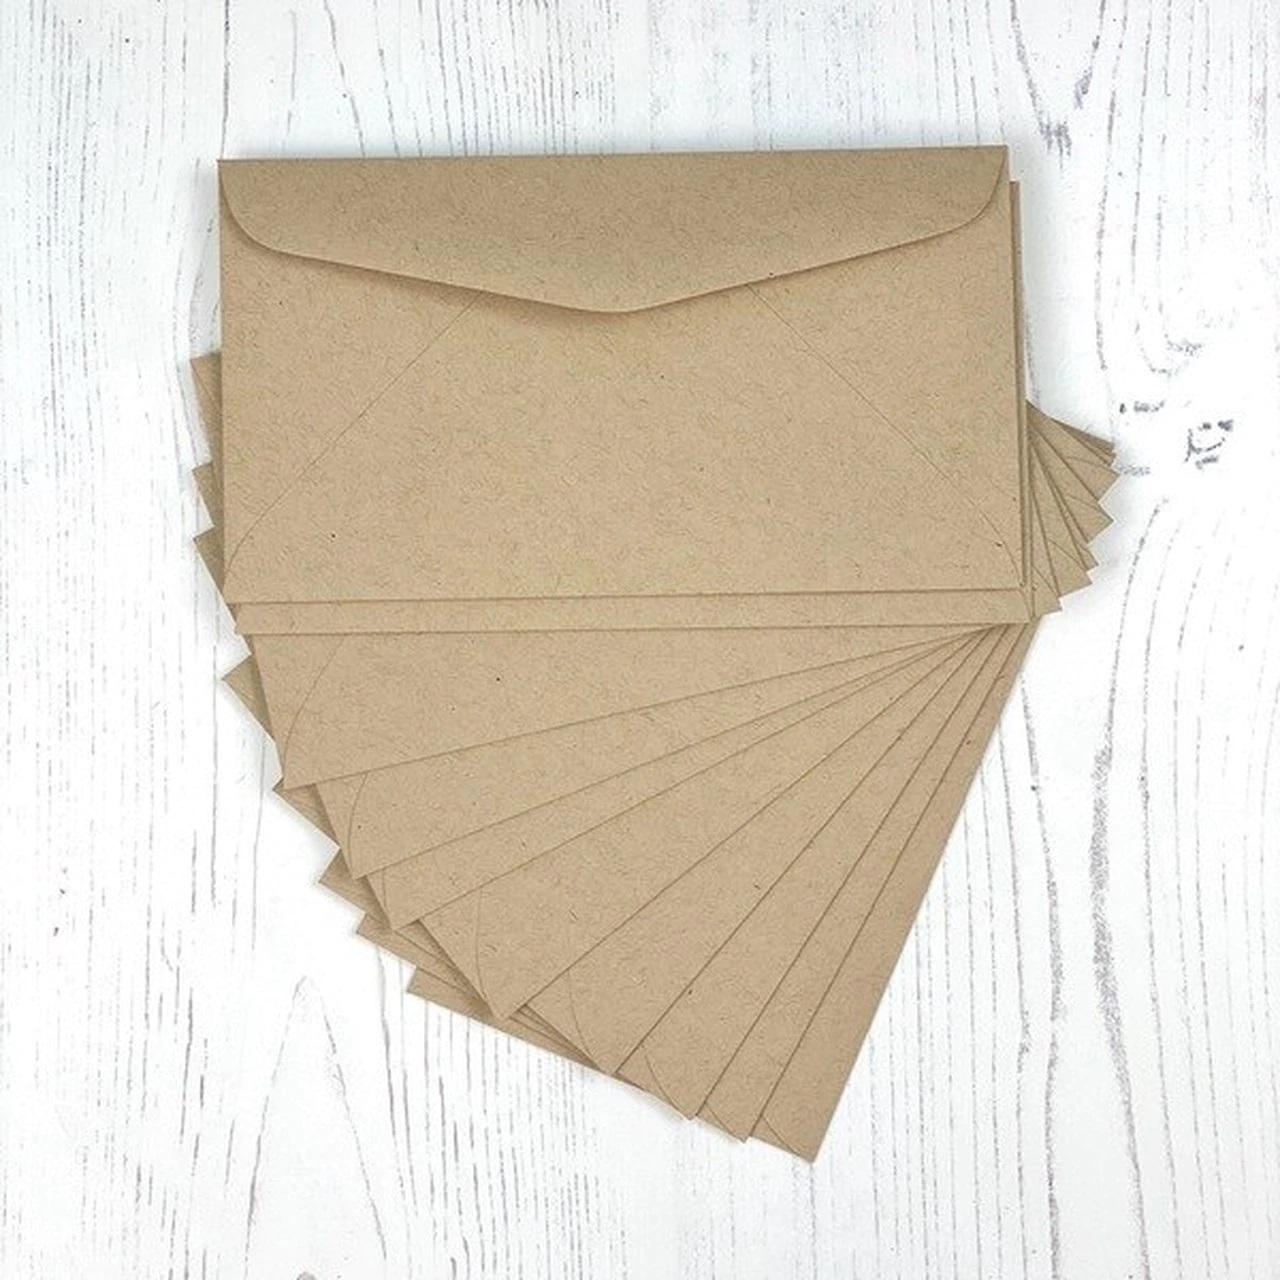 **PRE-ORDER* - Taylored Expression - MINI SLIM ENVELOPES - TOFFEE - PACK OF 10